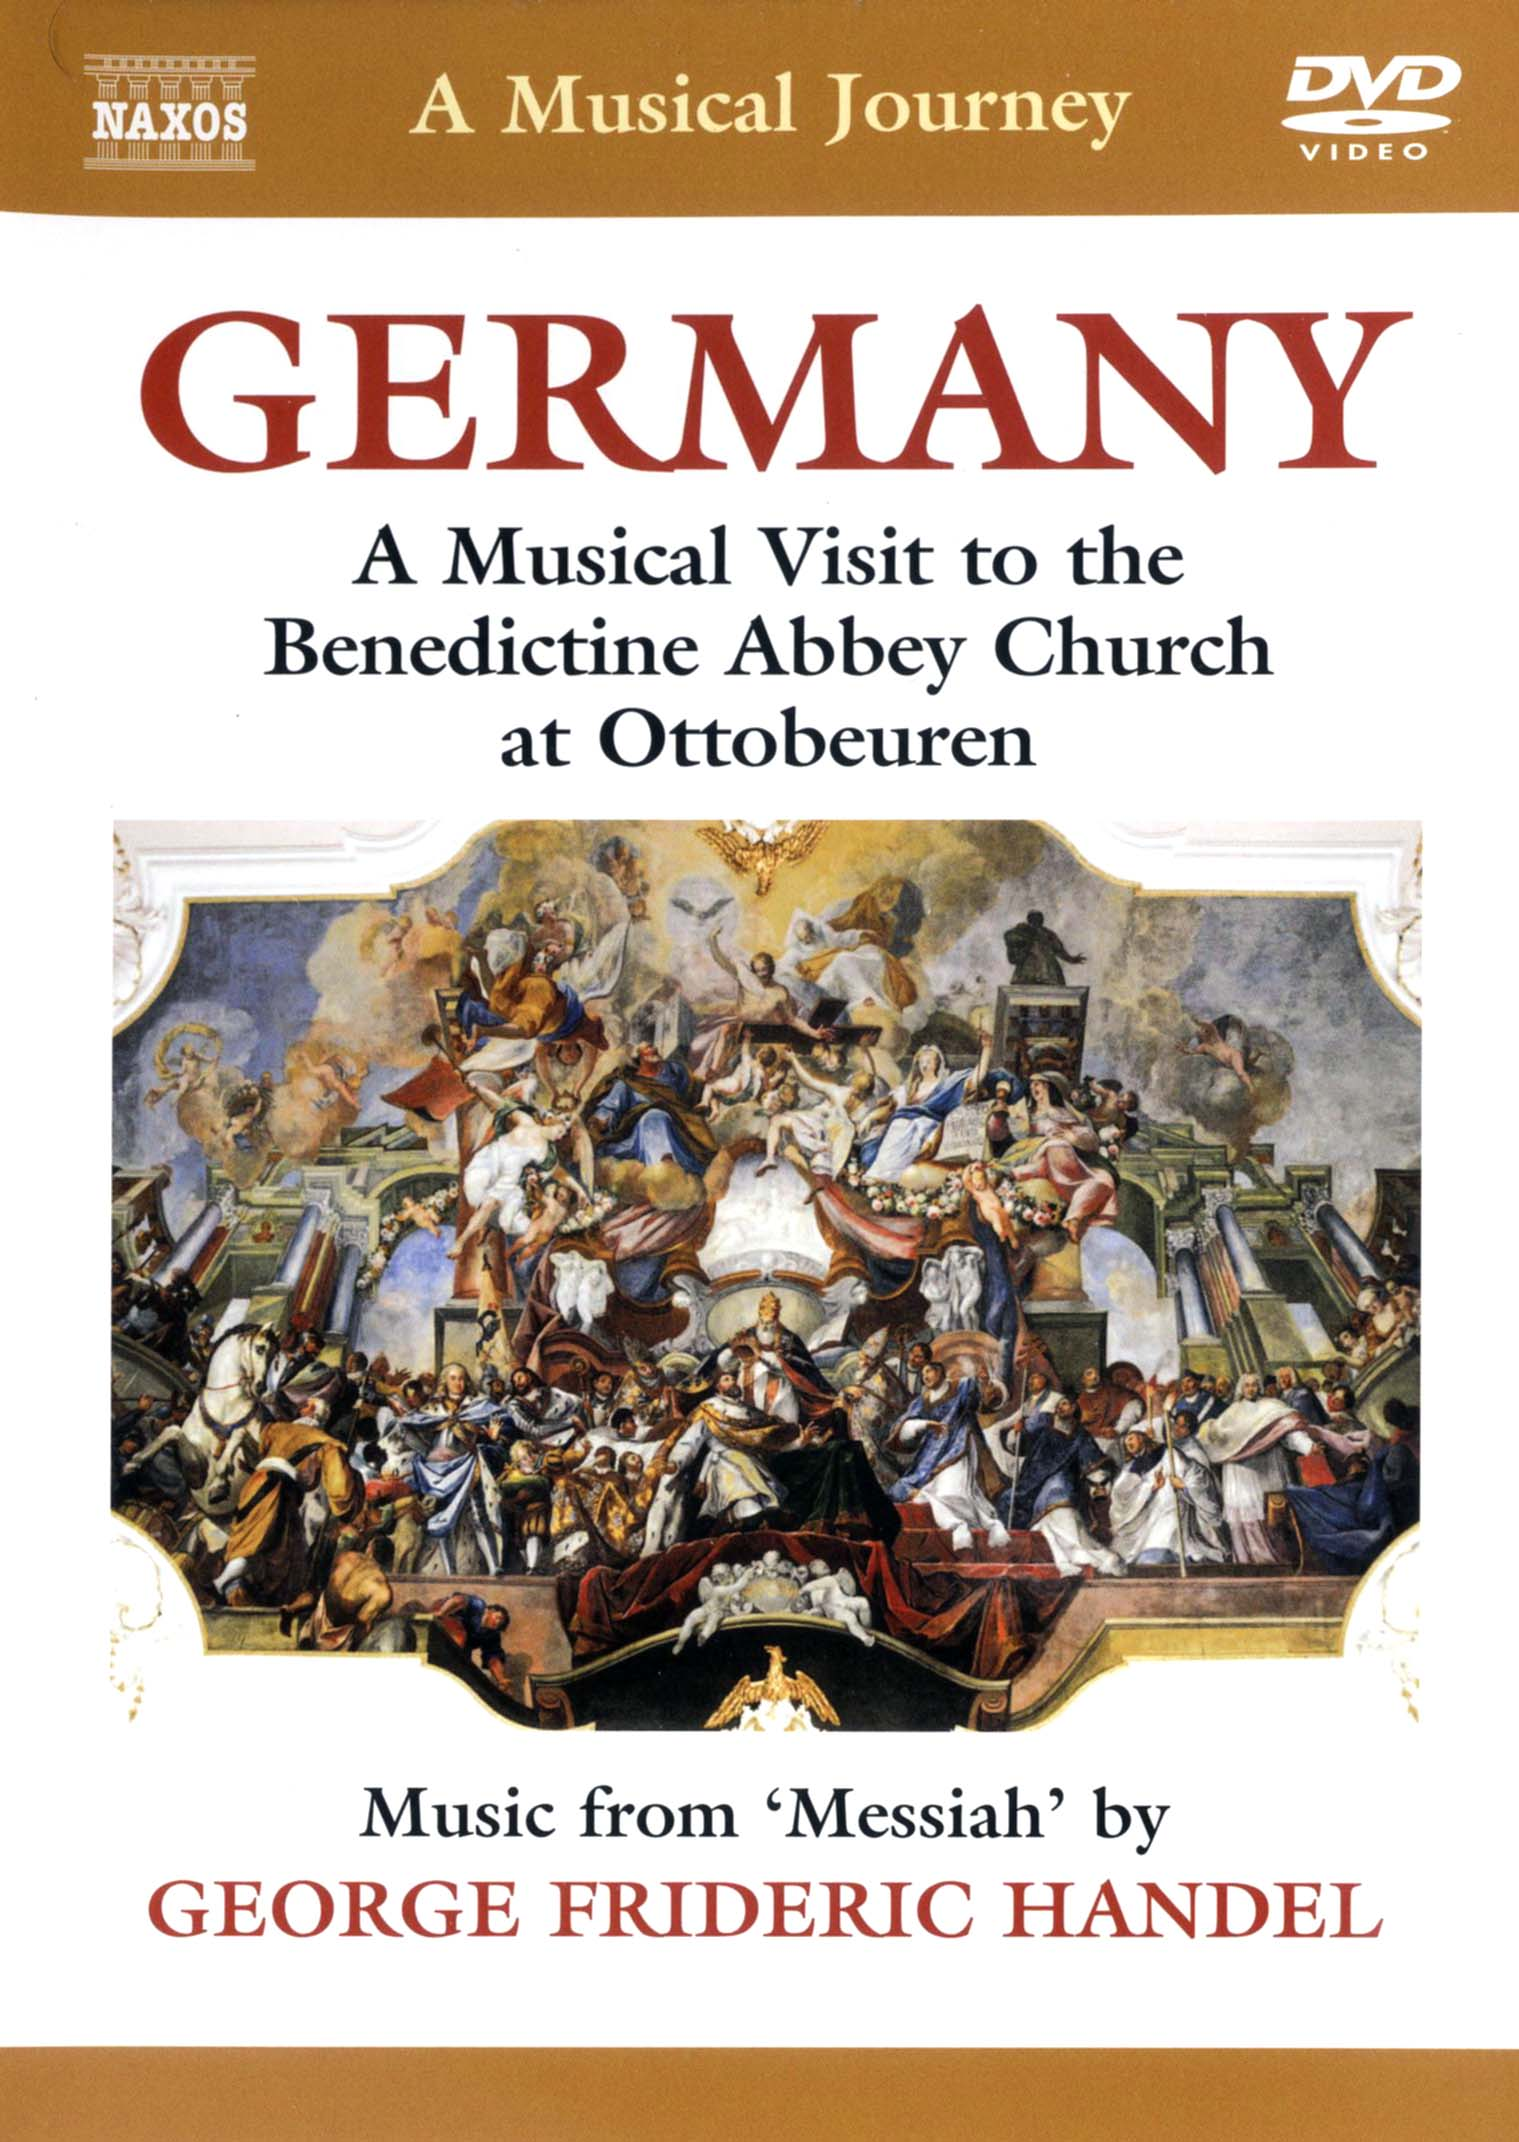 A Musical Journey: Germany - A Musical Visit to the Benedictine Abbey Church at Ottobeuren